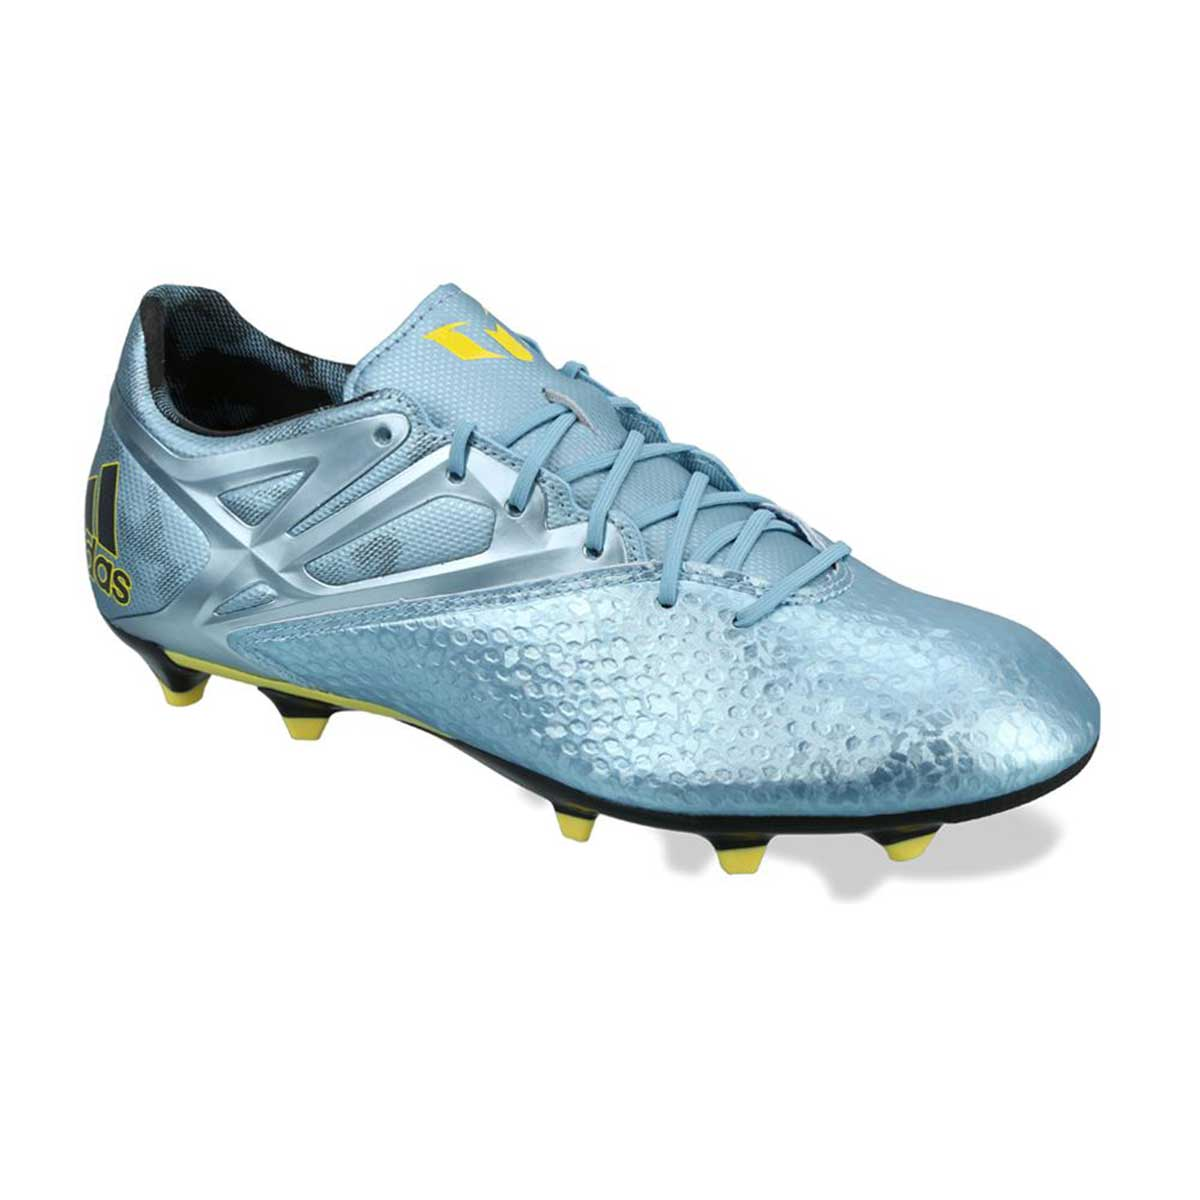 a4c82cfac Buy Adidas Messi 15.2 FG AG Football Shoes Online in India